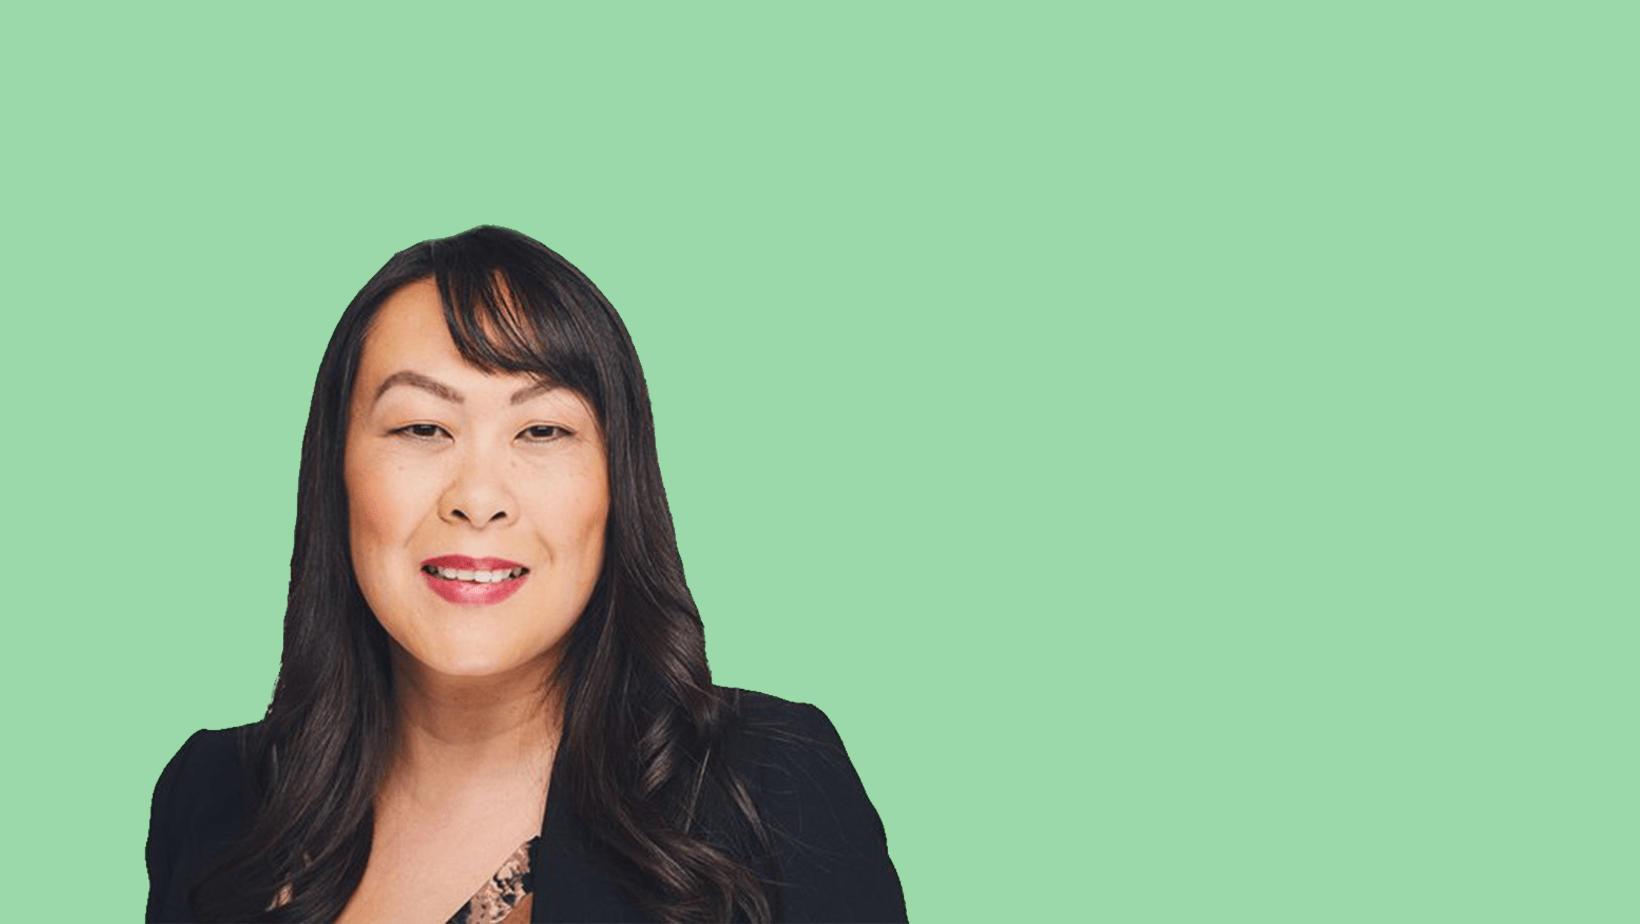 Our Bodies, Wellness & Aging: A Chat with Chia Chia Sun